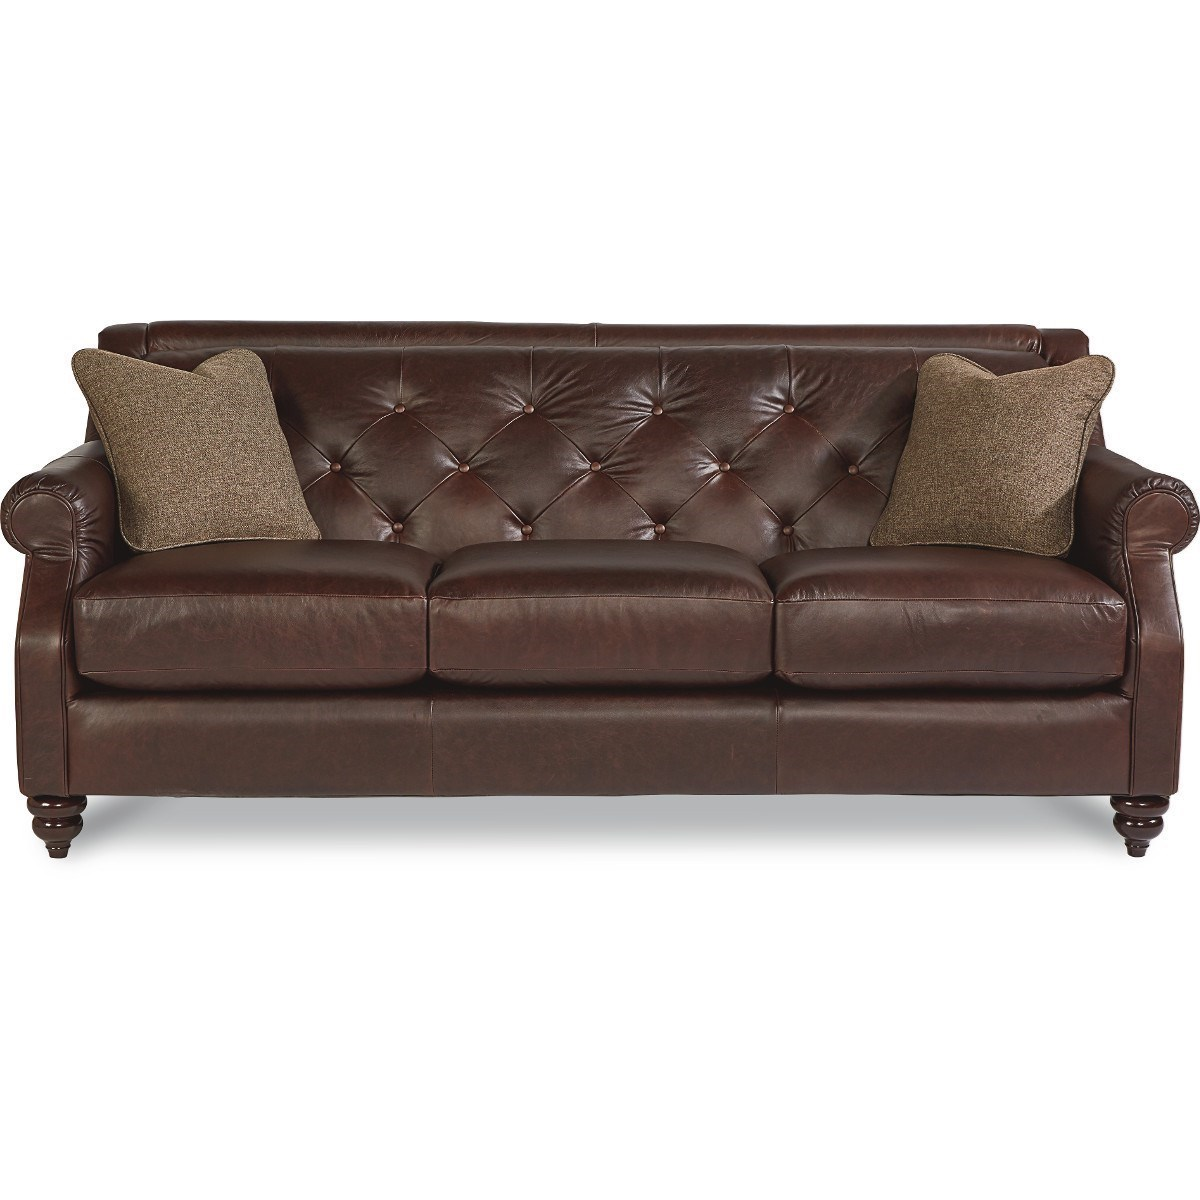 La-Z-Boy Aberdeen Traditional Sofa with Tufted Seatback - Morris Home - Sofa